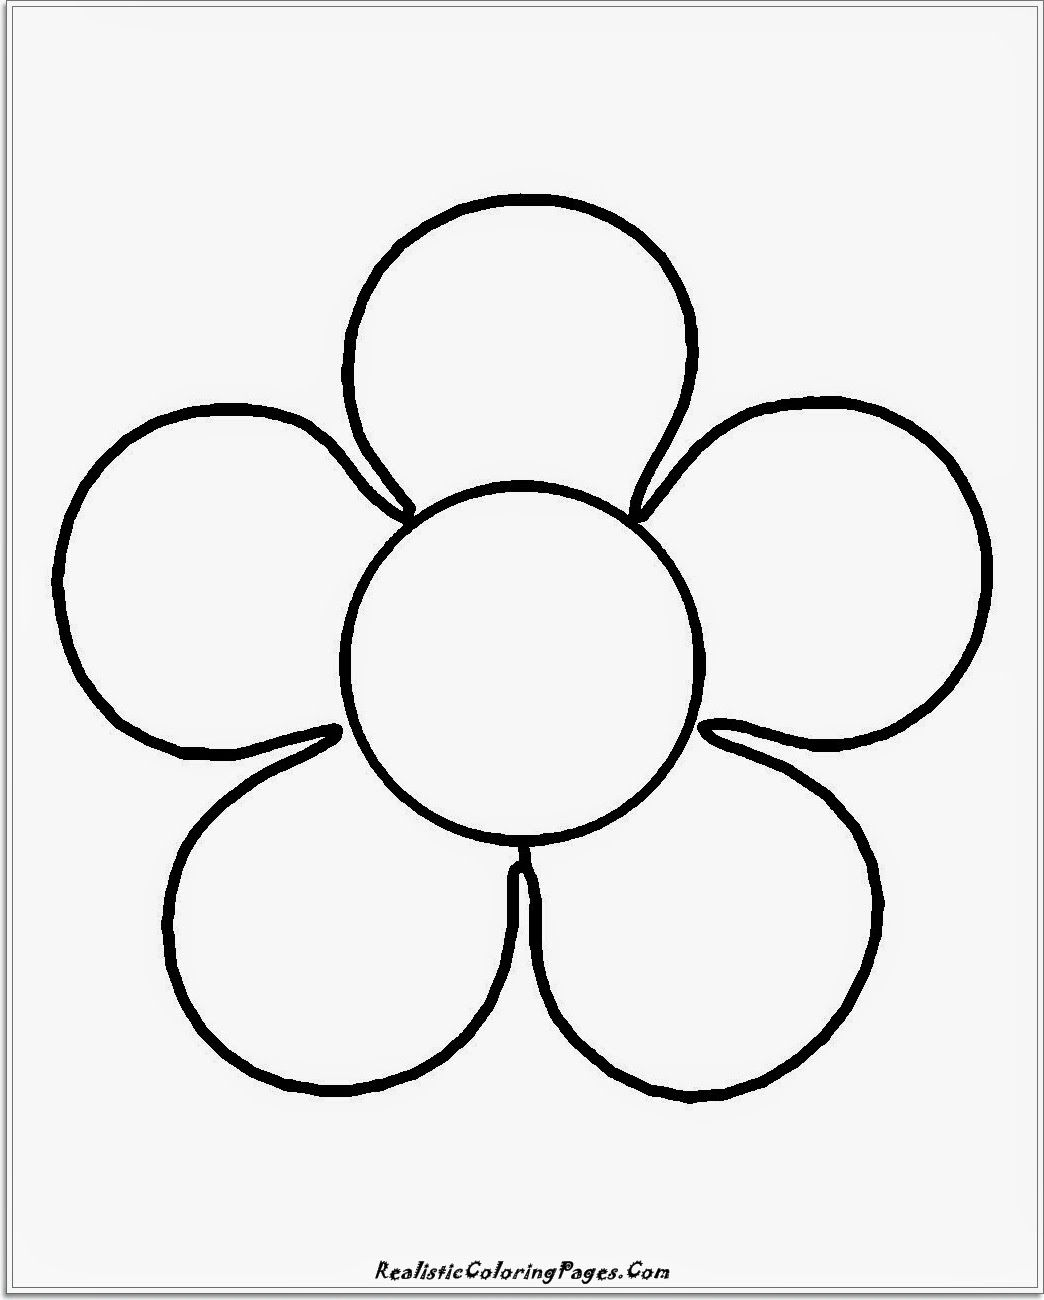 Coloring Pages Simple Flower - High Quality Coloring Pages